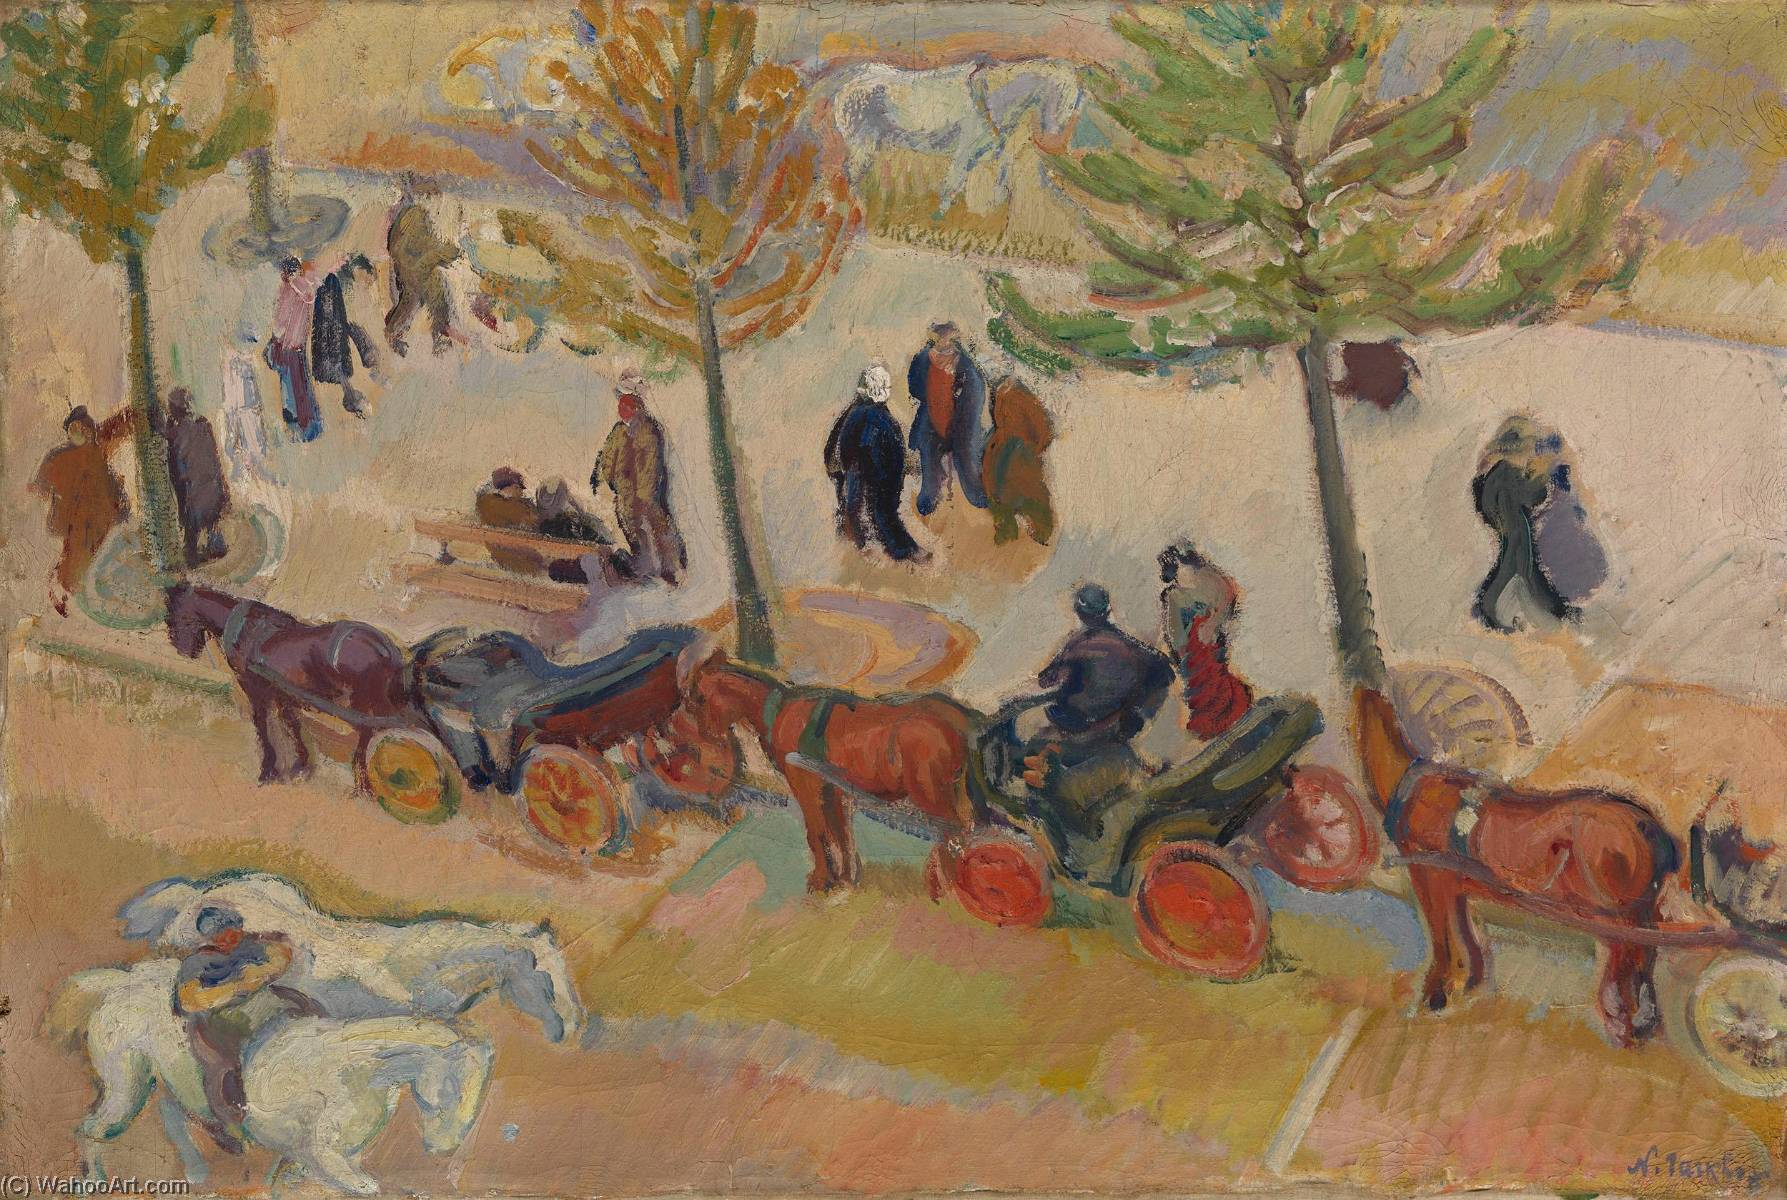 Fiacres Parking, Oil On Canvas by Nicolas Tarkhoff (1871-1930)